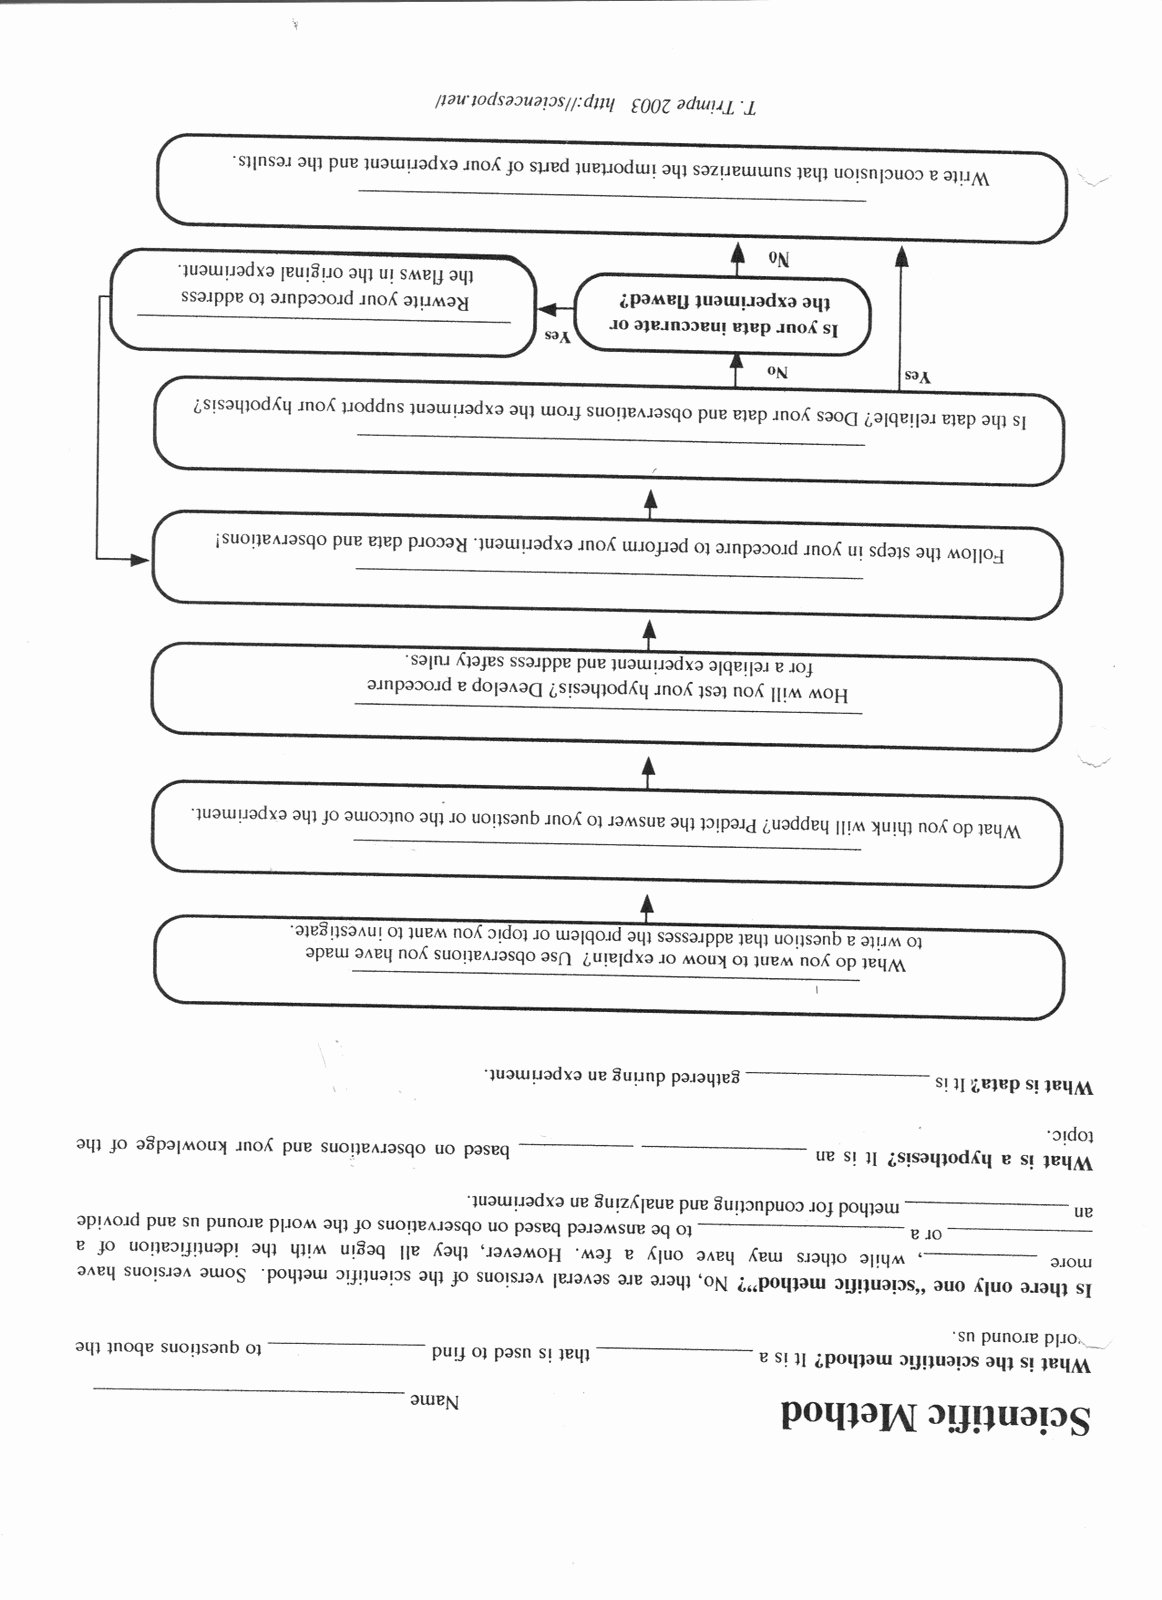 Scientific Method Worksheet High School Inspirational Ms Friedman S Biology Class Scientific Method Worksheets